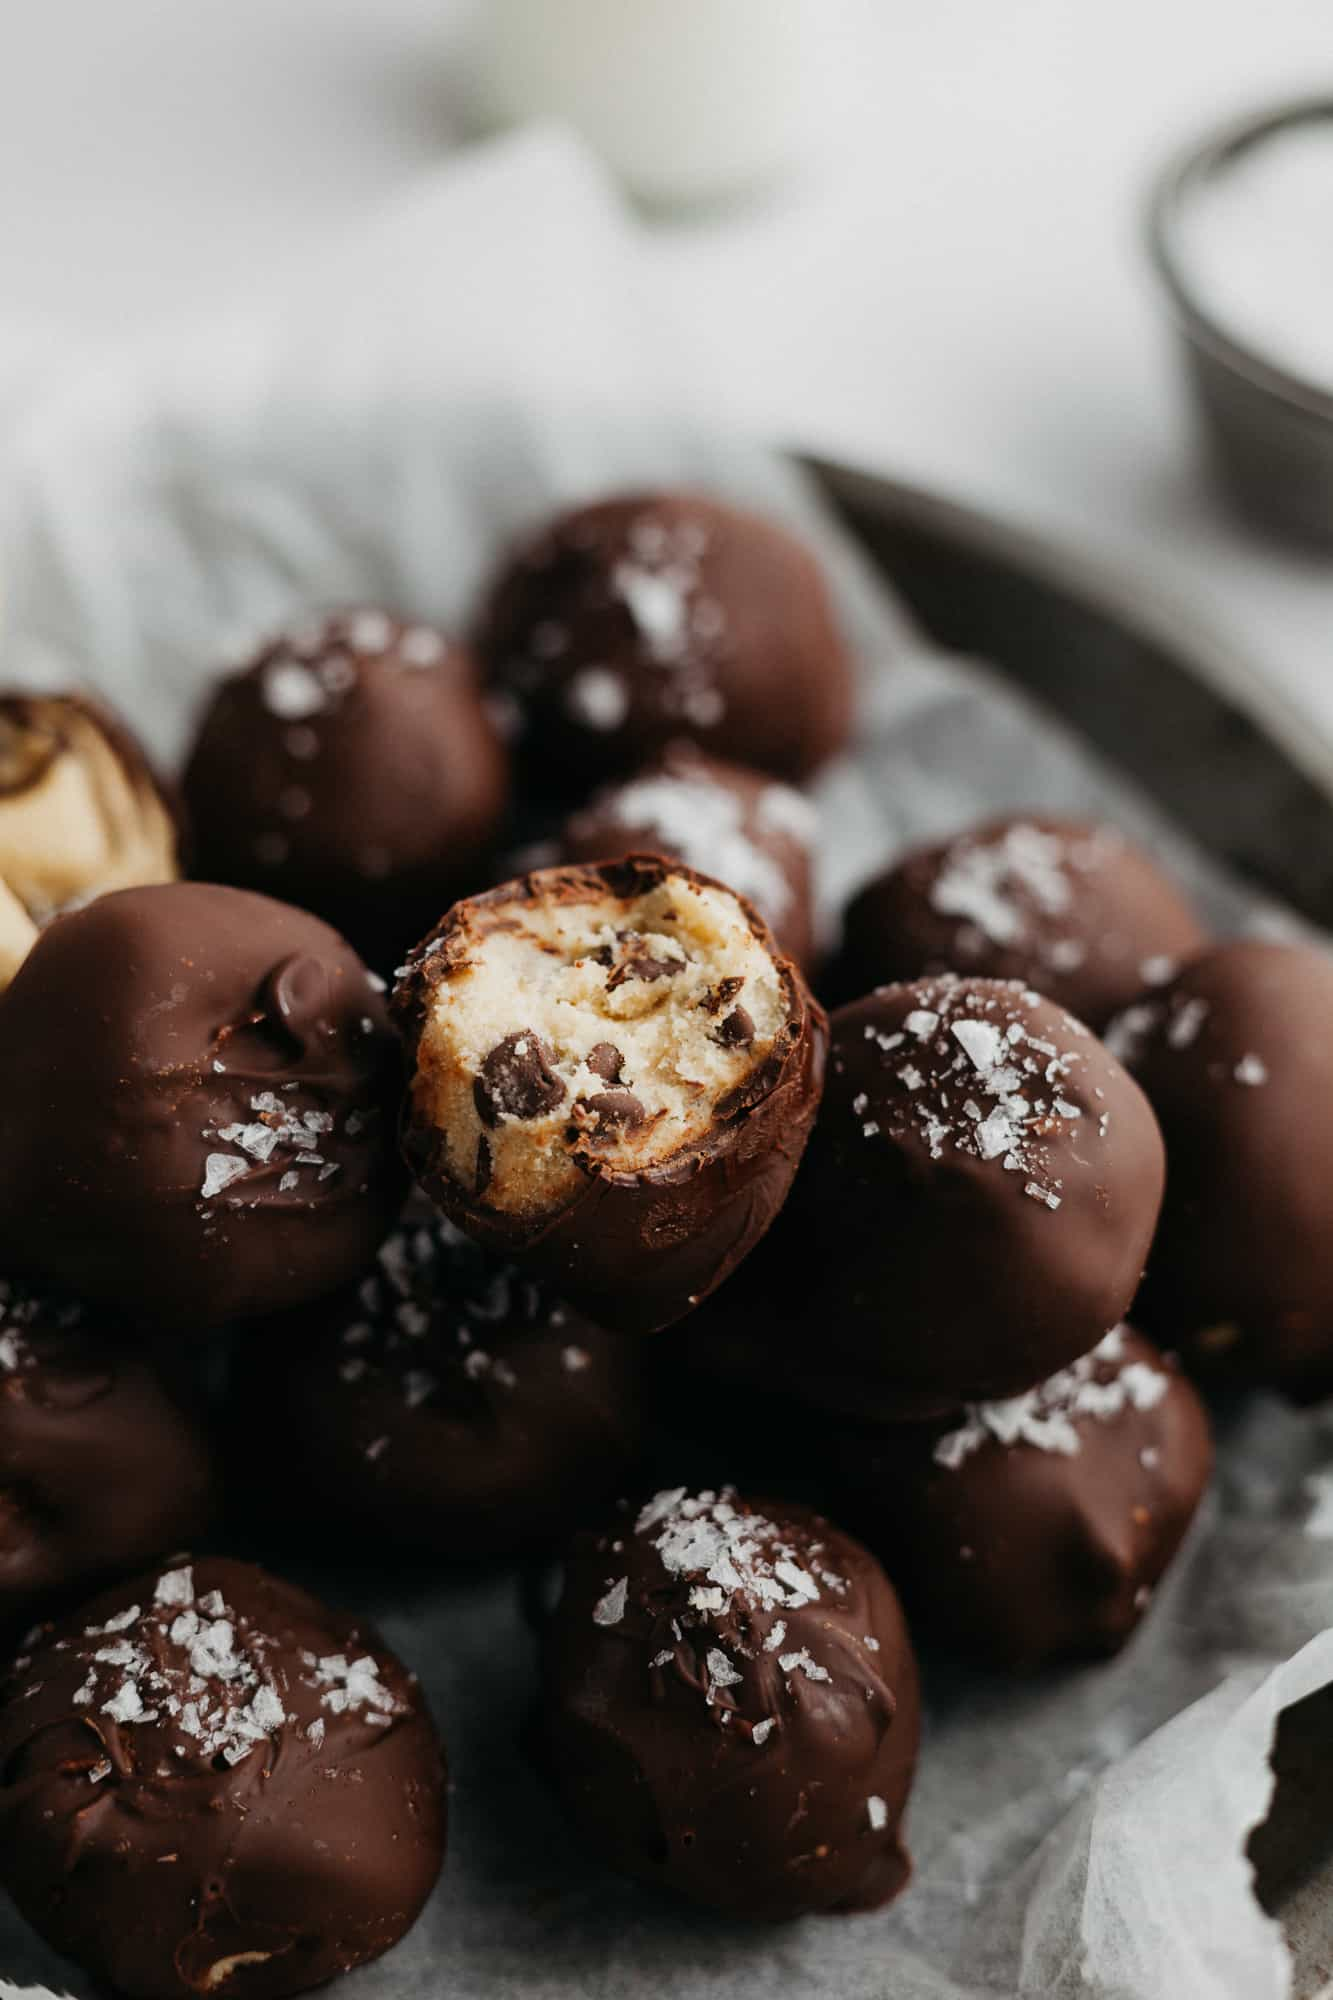 Cookie dough bites dipped in chocolate and sprinkled with sea salt on parchment paper. One has a taken out of it